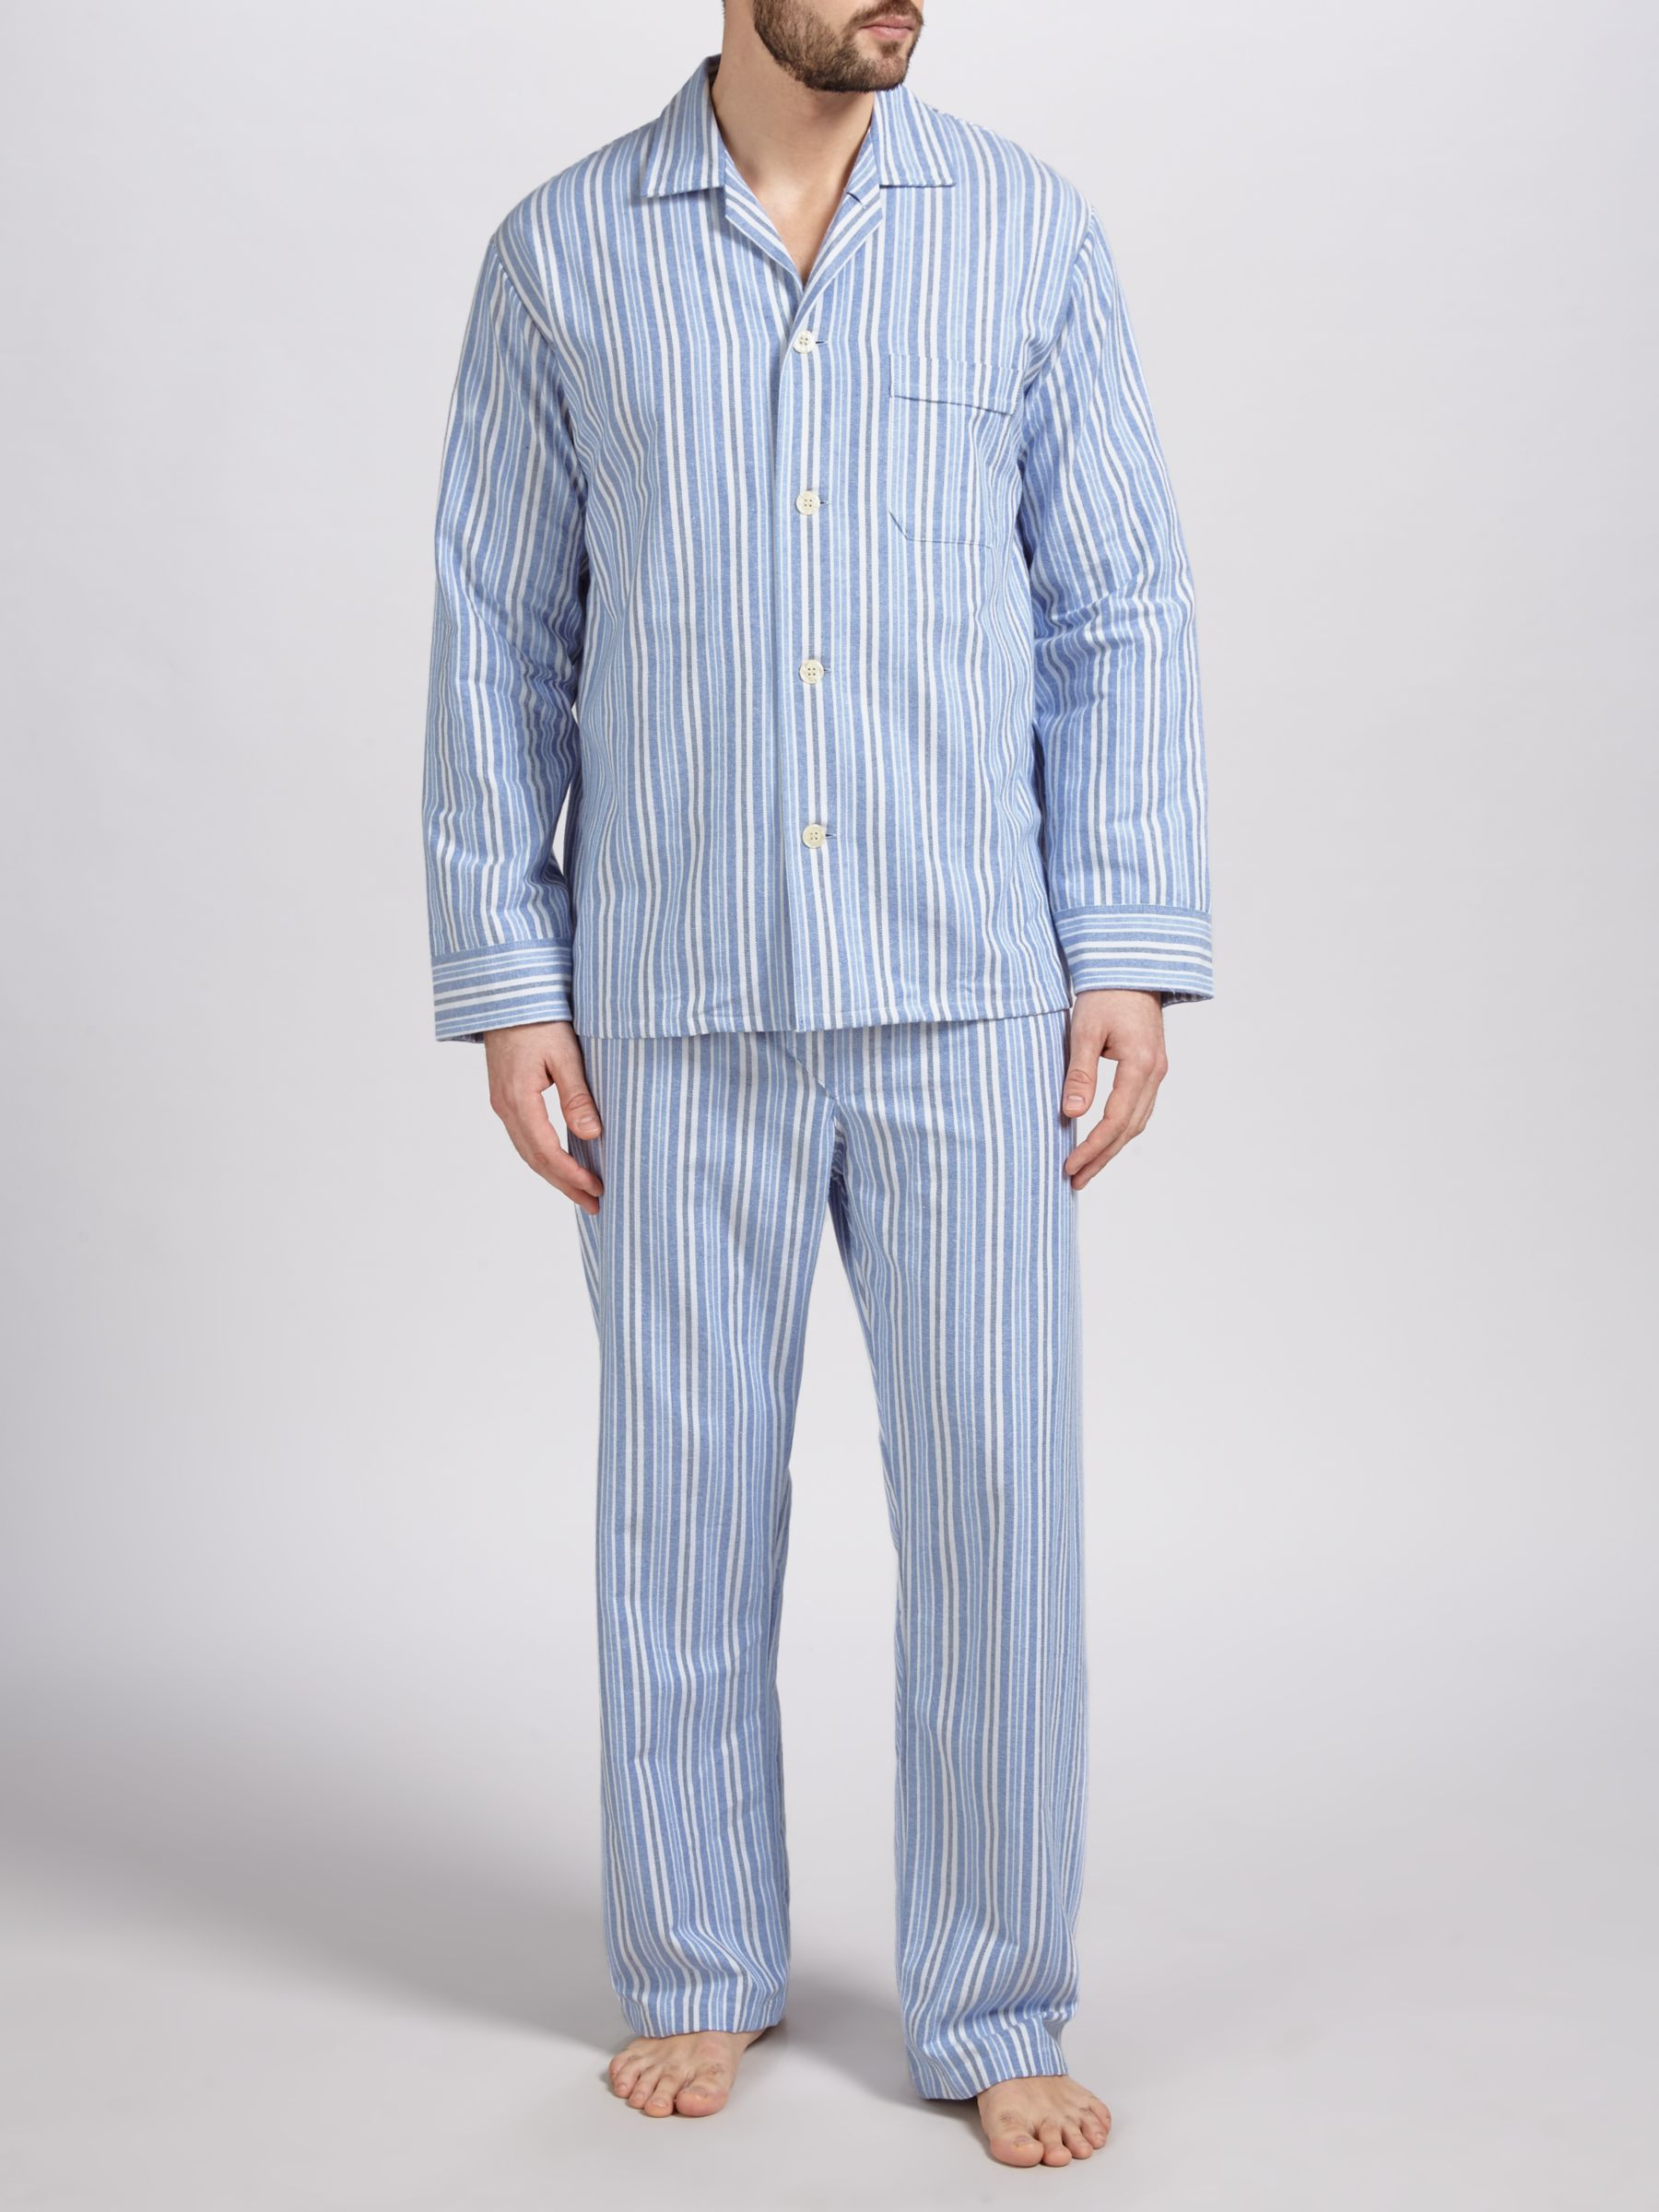 Derek Rose Derek Rose Brushed Cotton Stripe Pyjamas, Blue/White